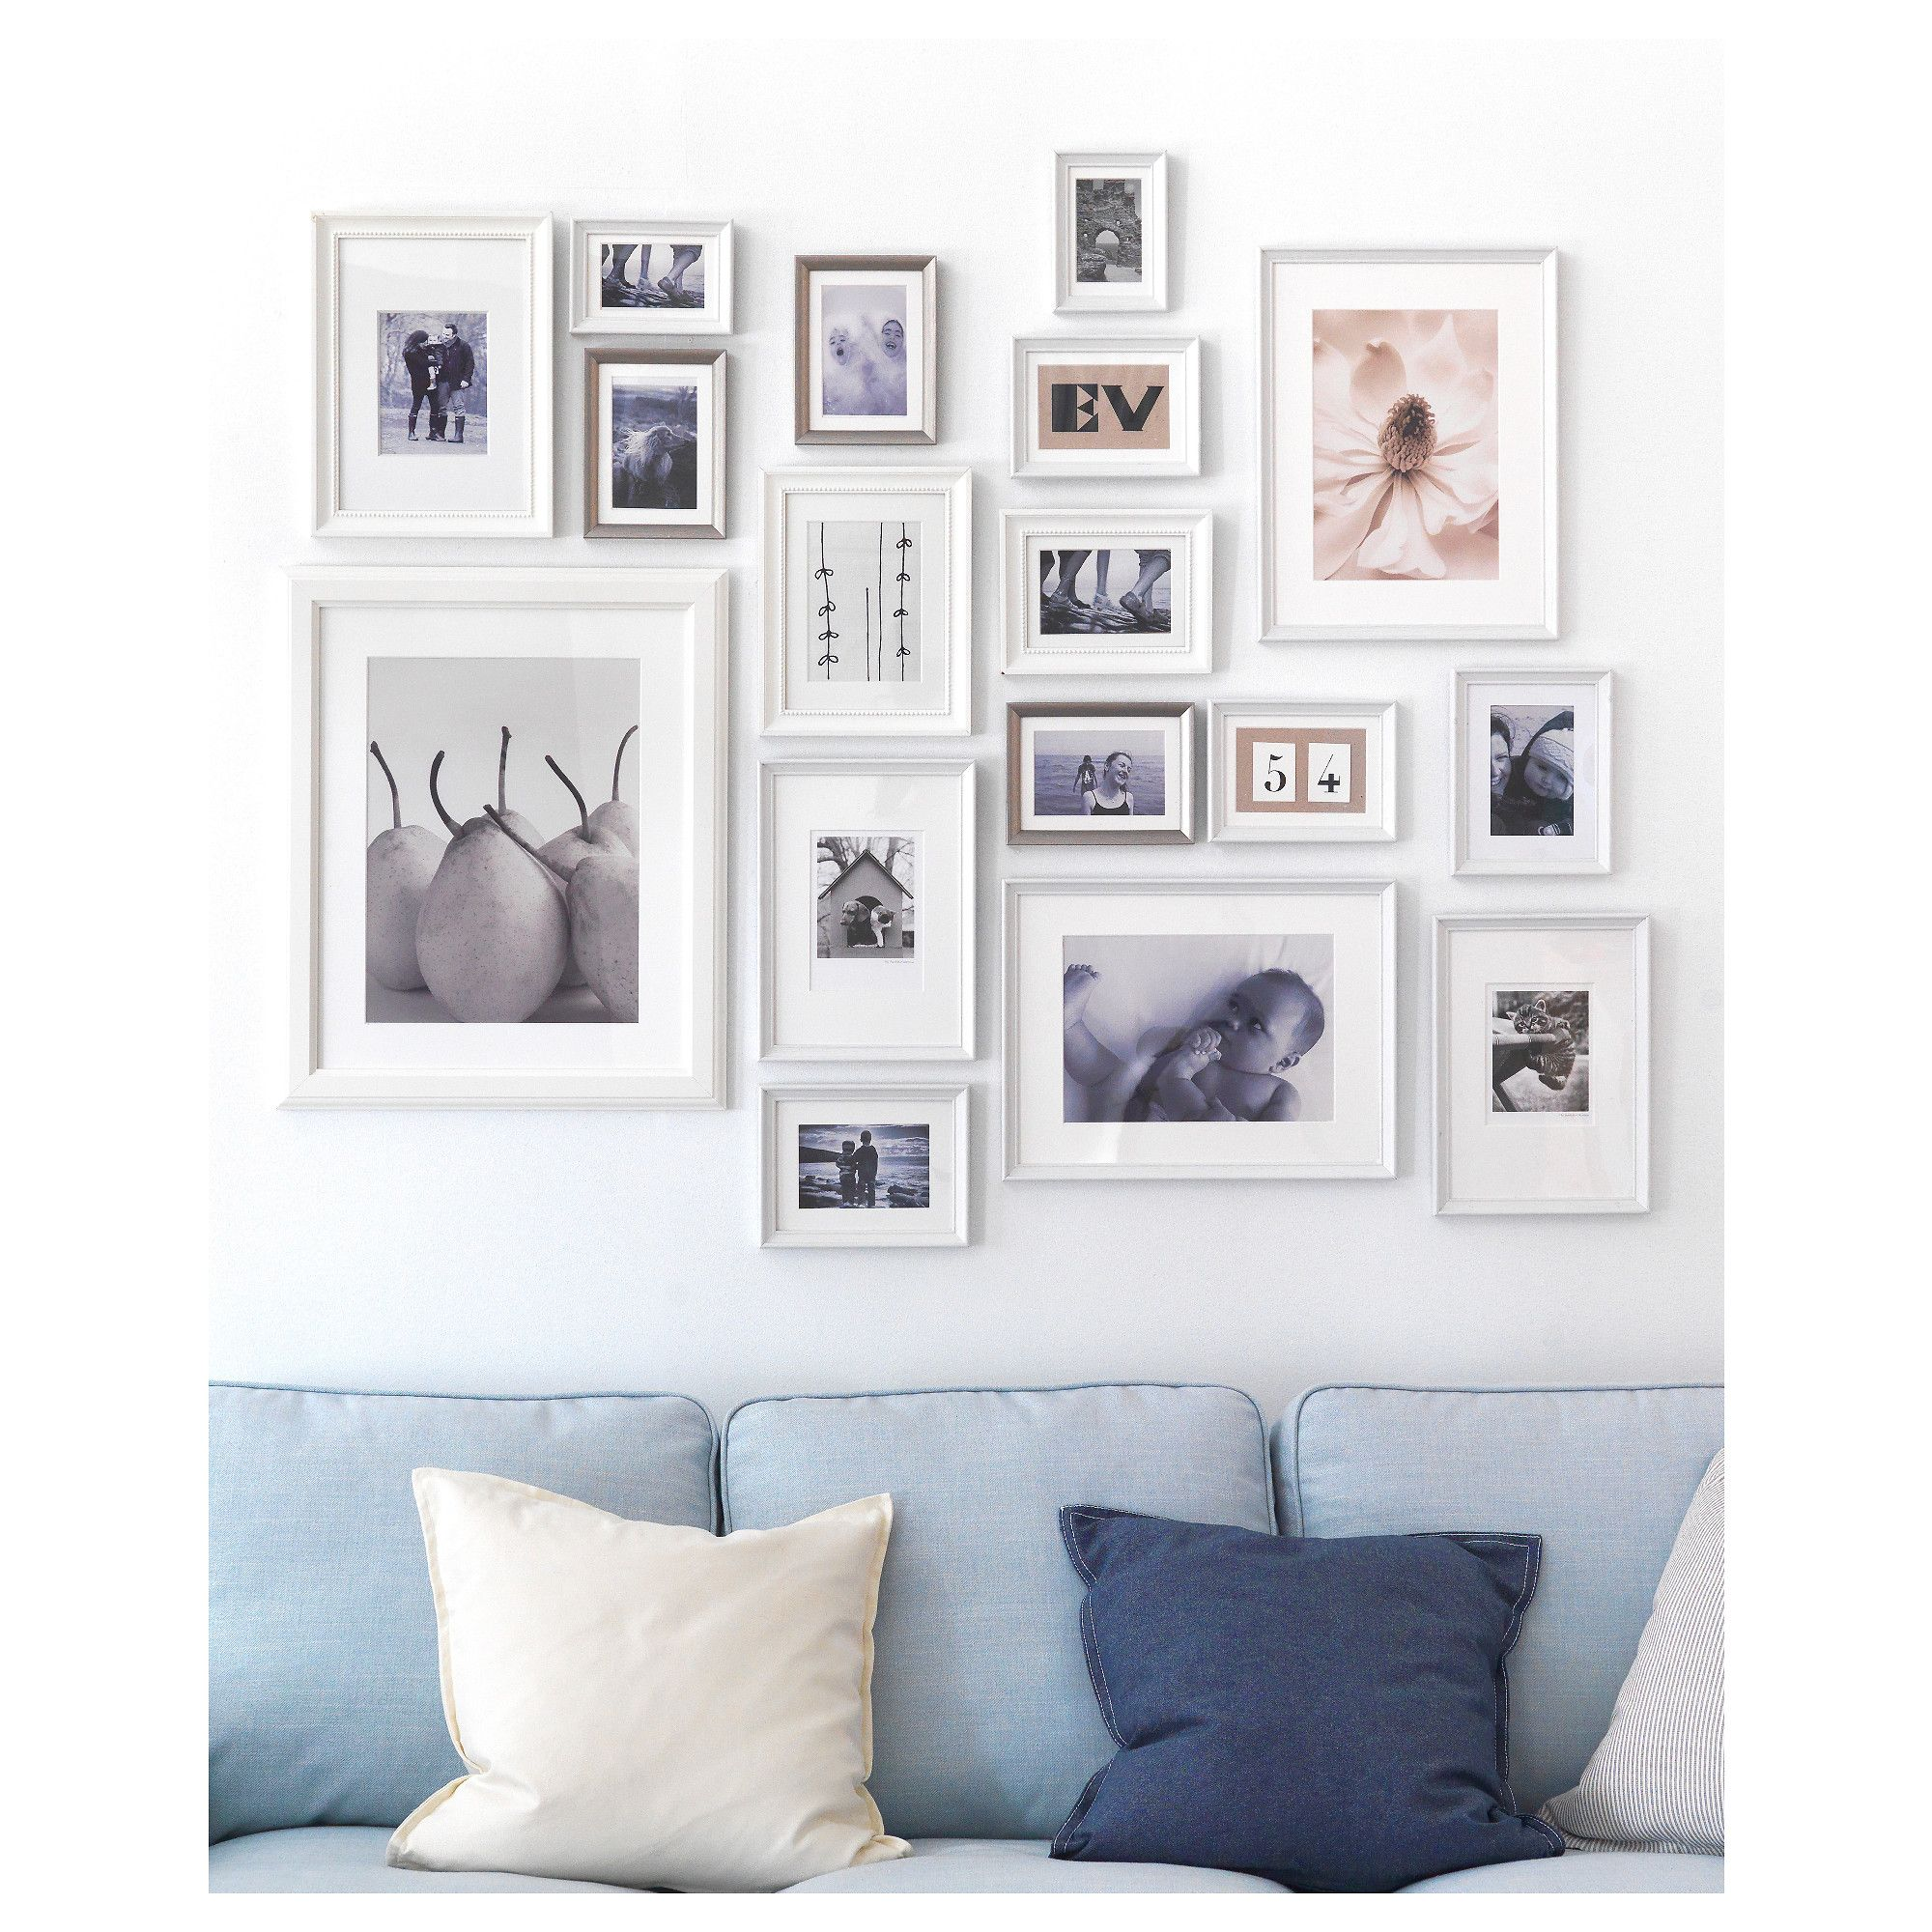 ikea mÅtteby wall template set of 4 create a personal collage with